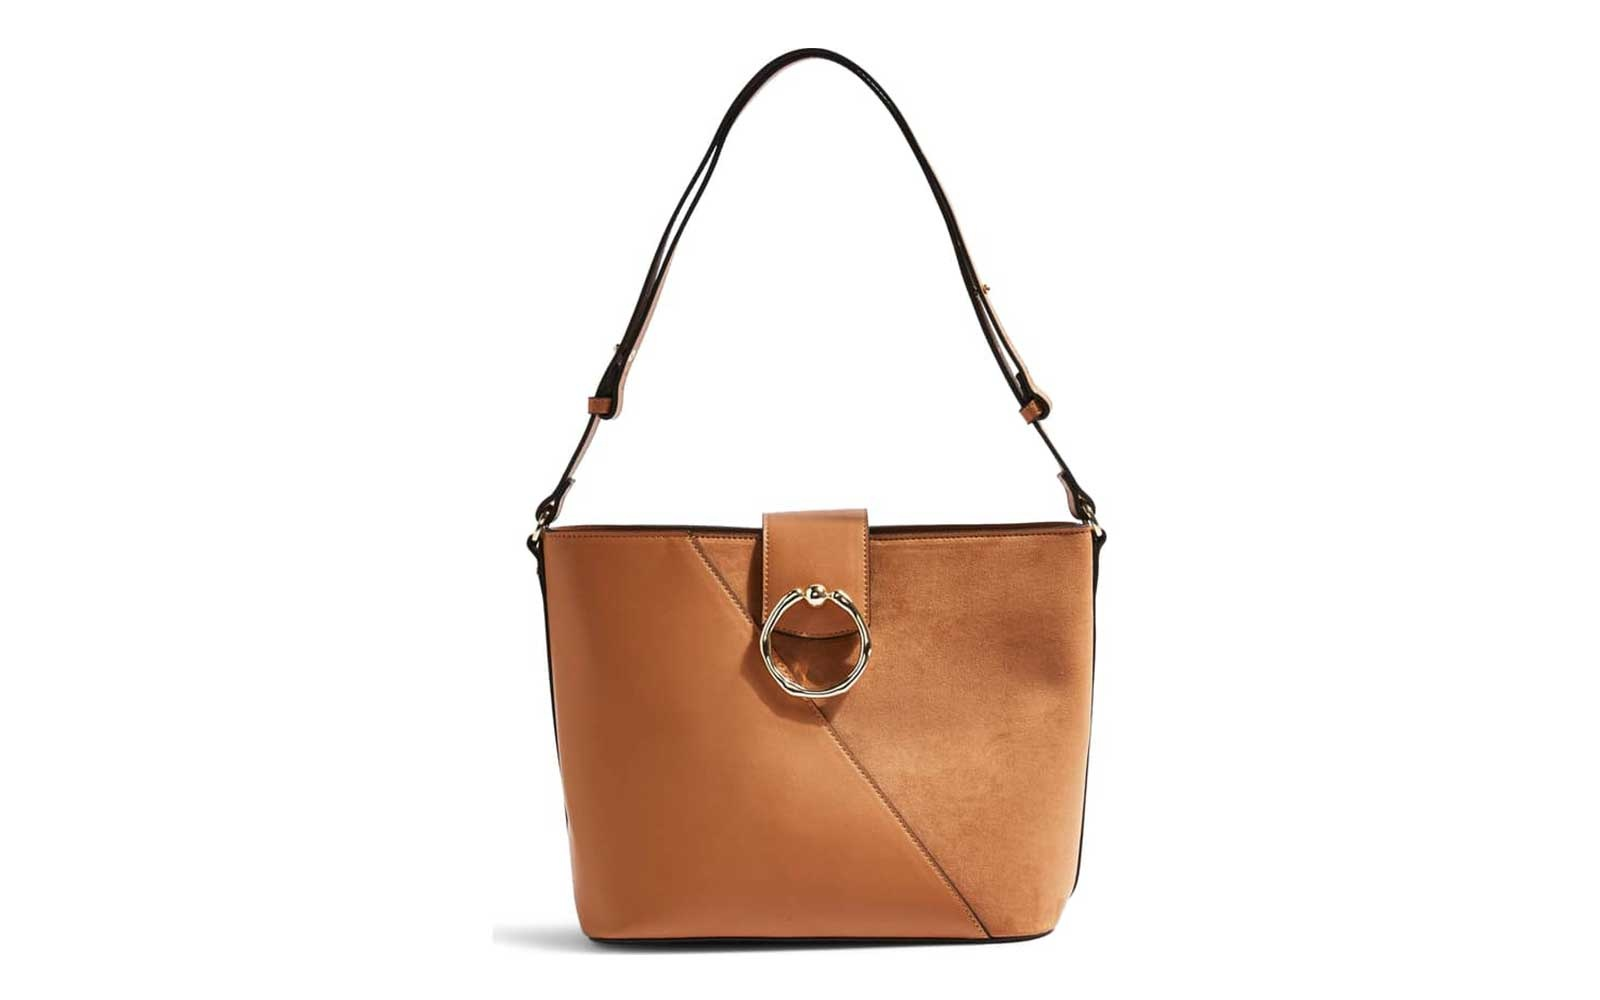 Topshop Spark Piece Faux Leather Hobo Bag